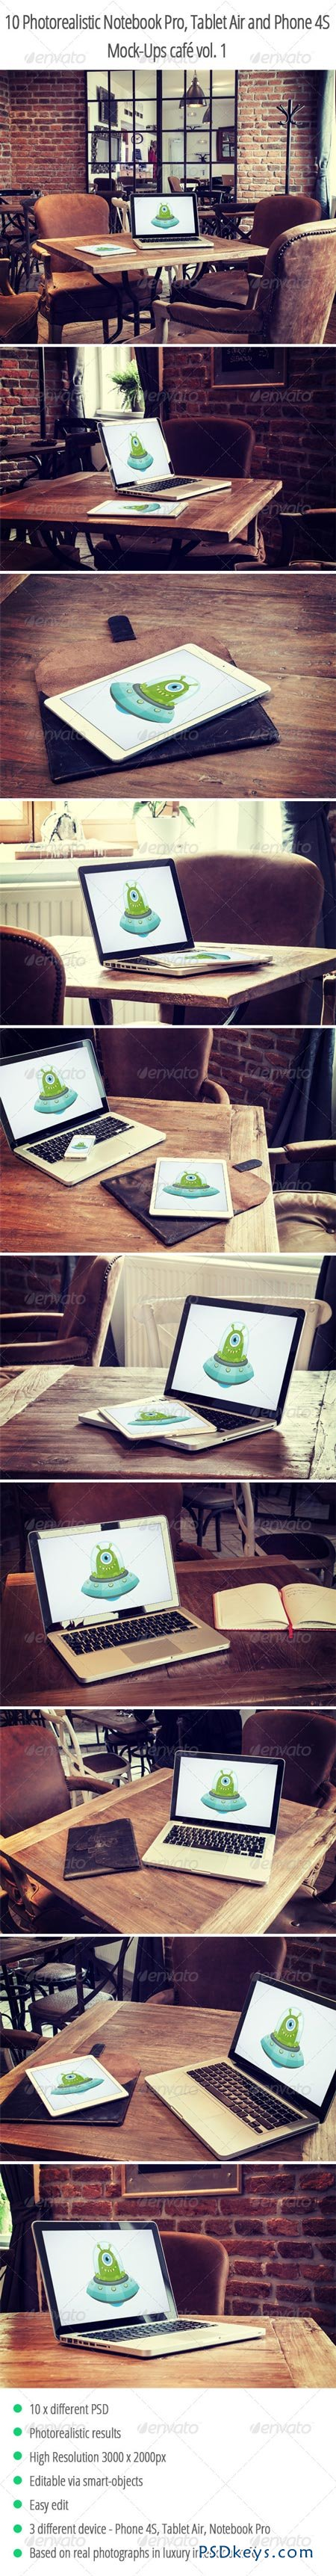 10 Photorealistic Device Mock-Ups in Cafe Vol.1 6652634